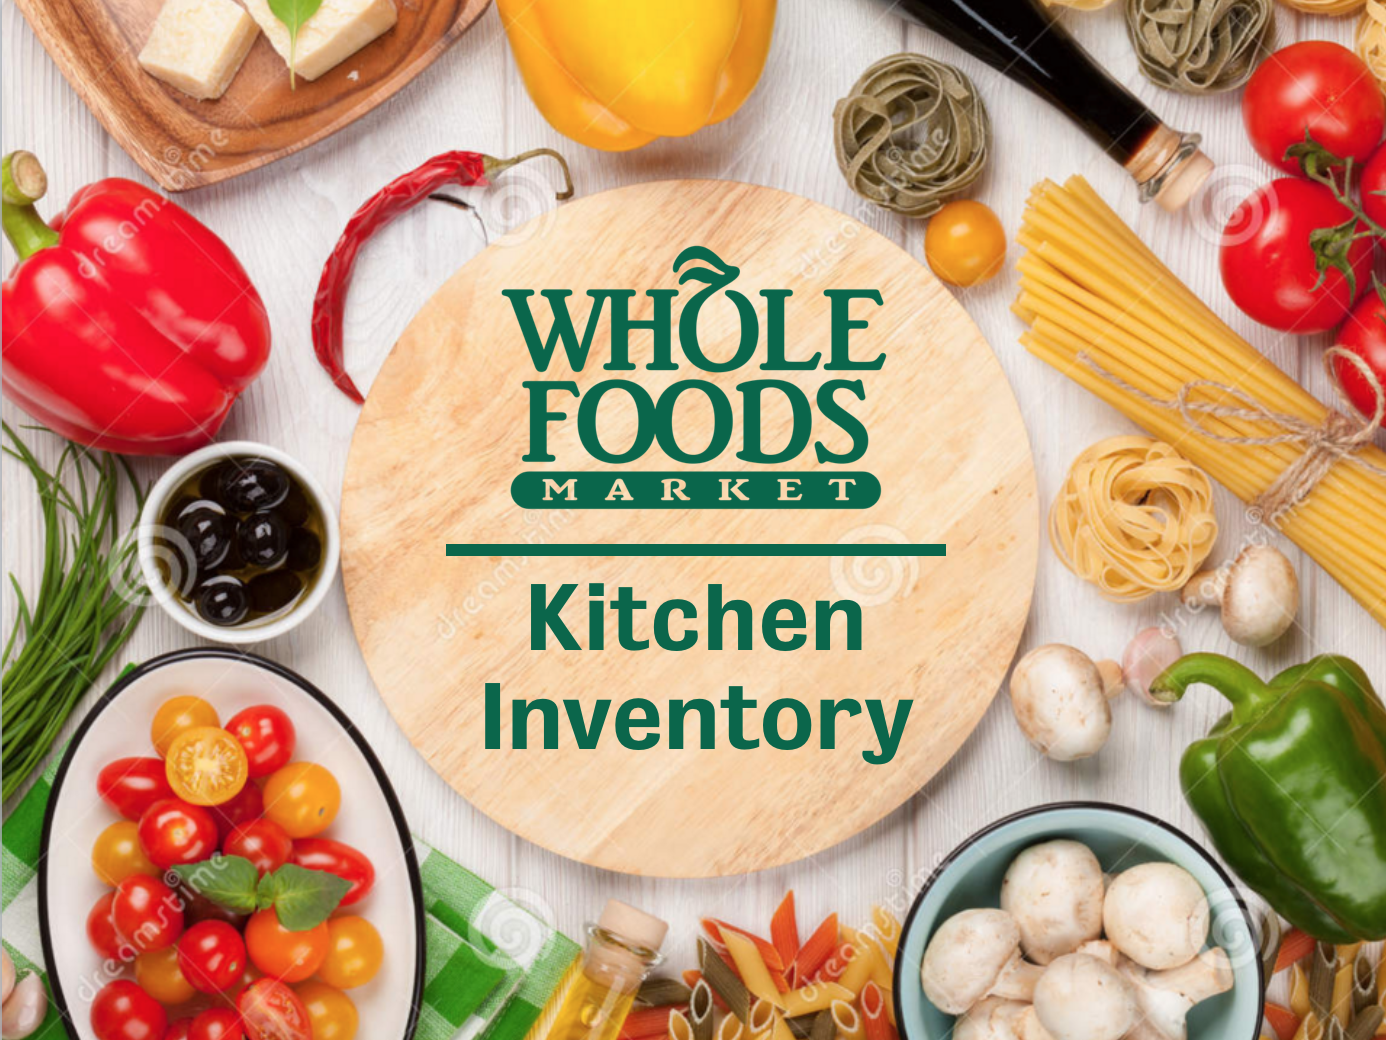 Kitchen Inventory for the Whole Foods App - Stacey Zhou - Medium